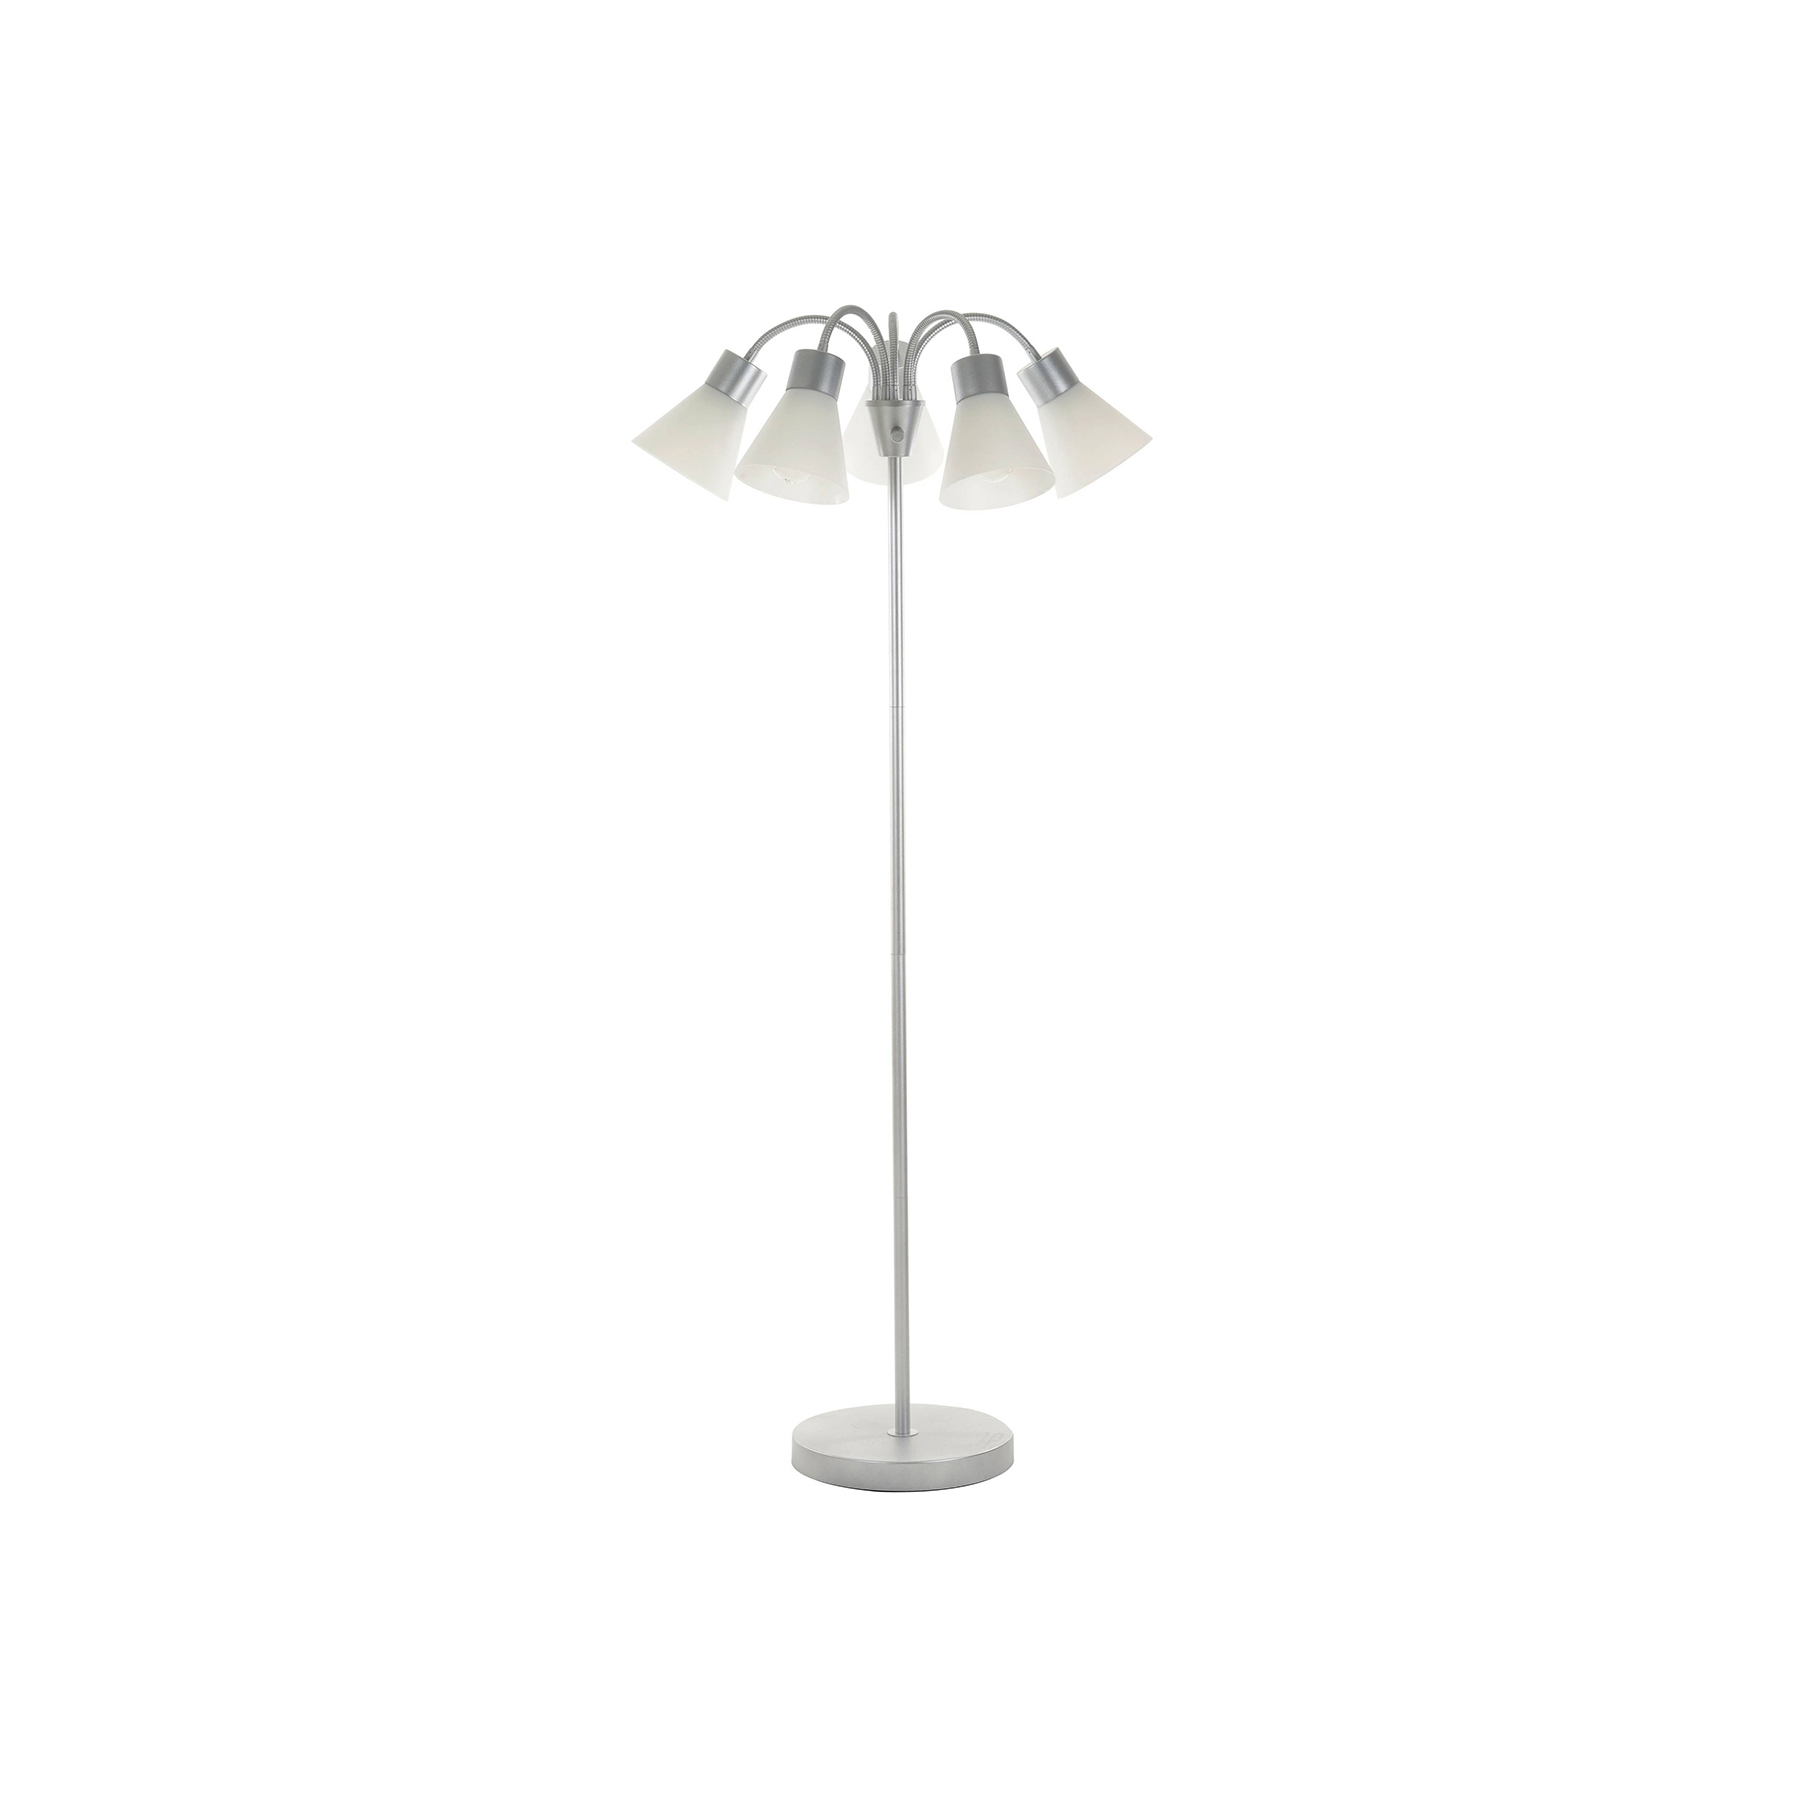 5-Head Floor Lamp